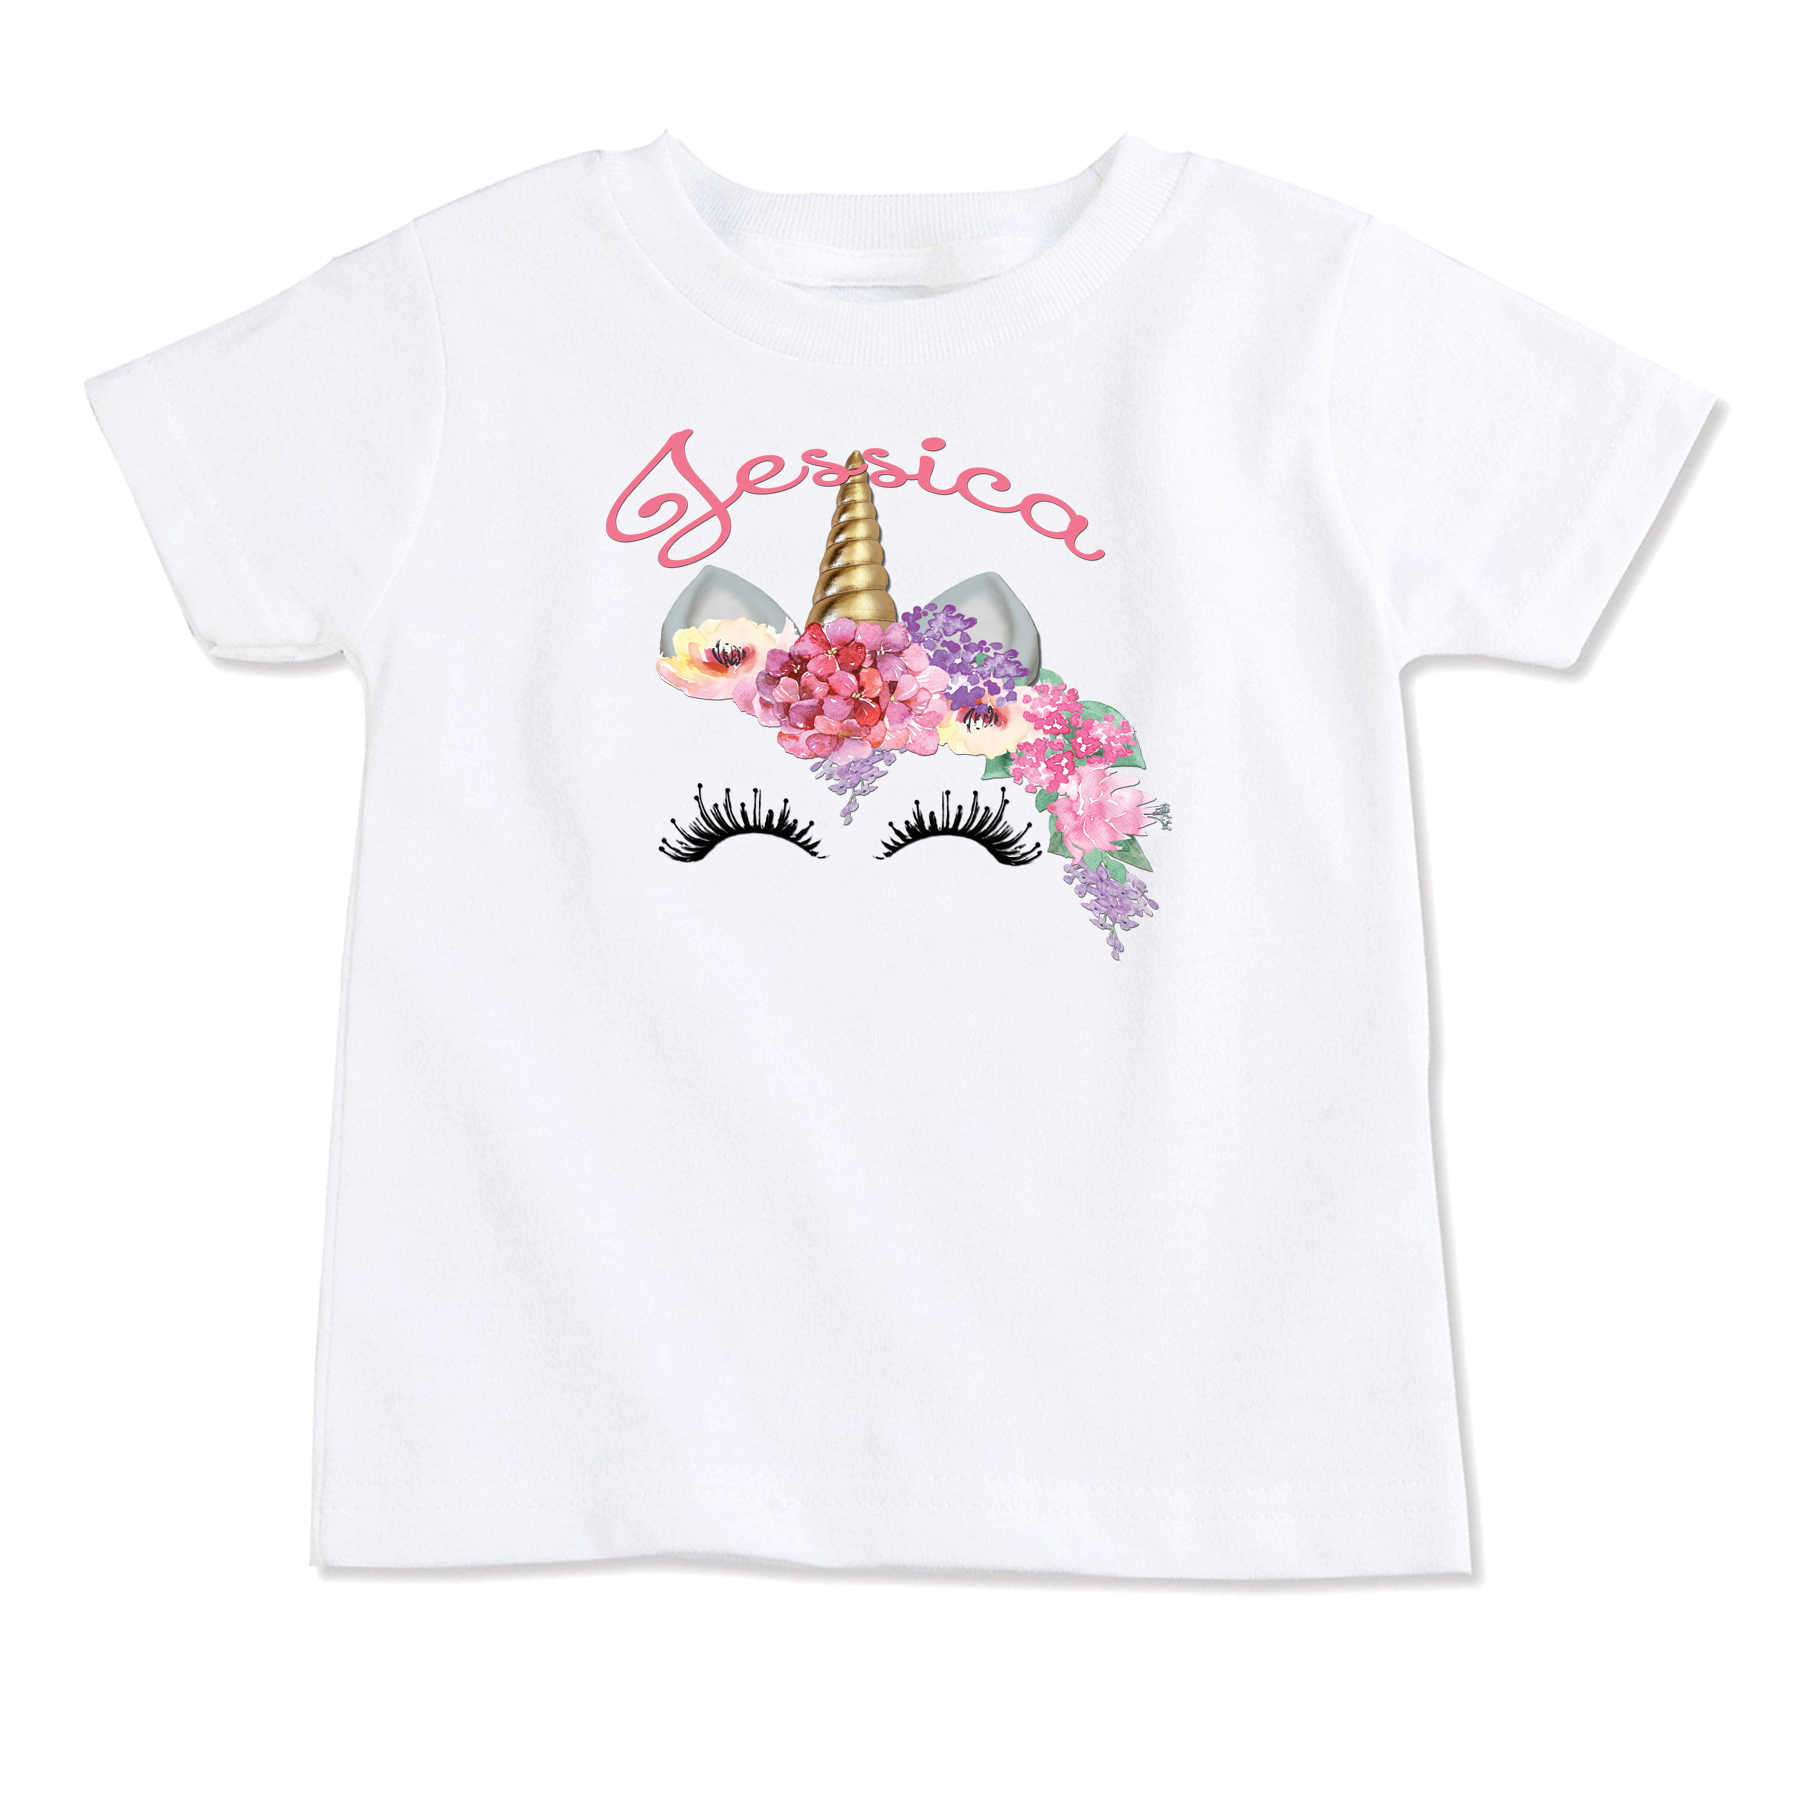 Personalised Custom Printed T Shirts for Kids Children Birthdays Events Partys